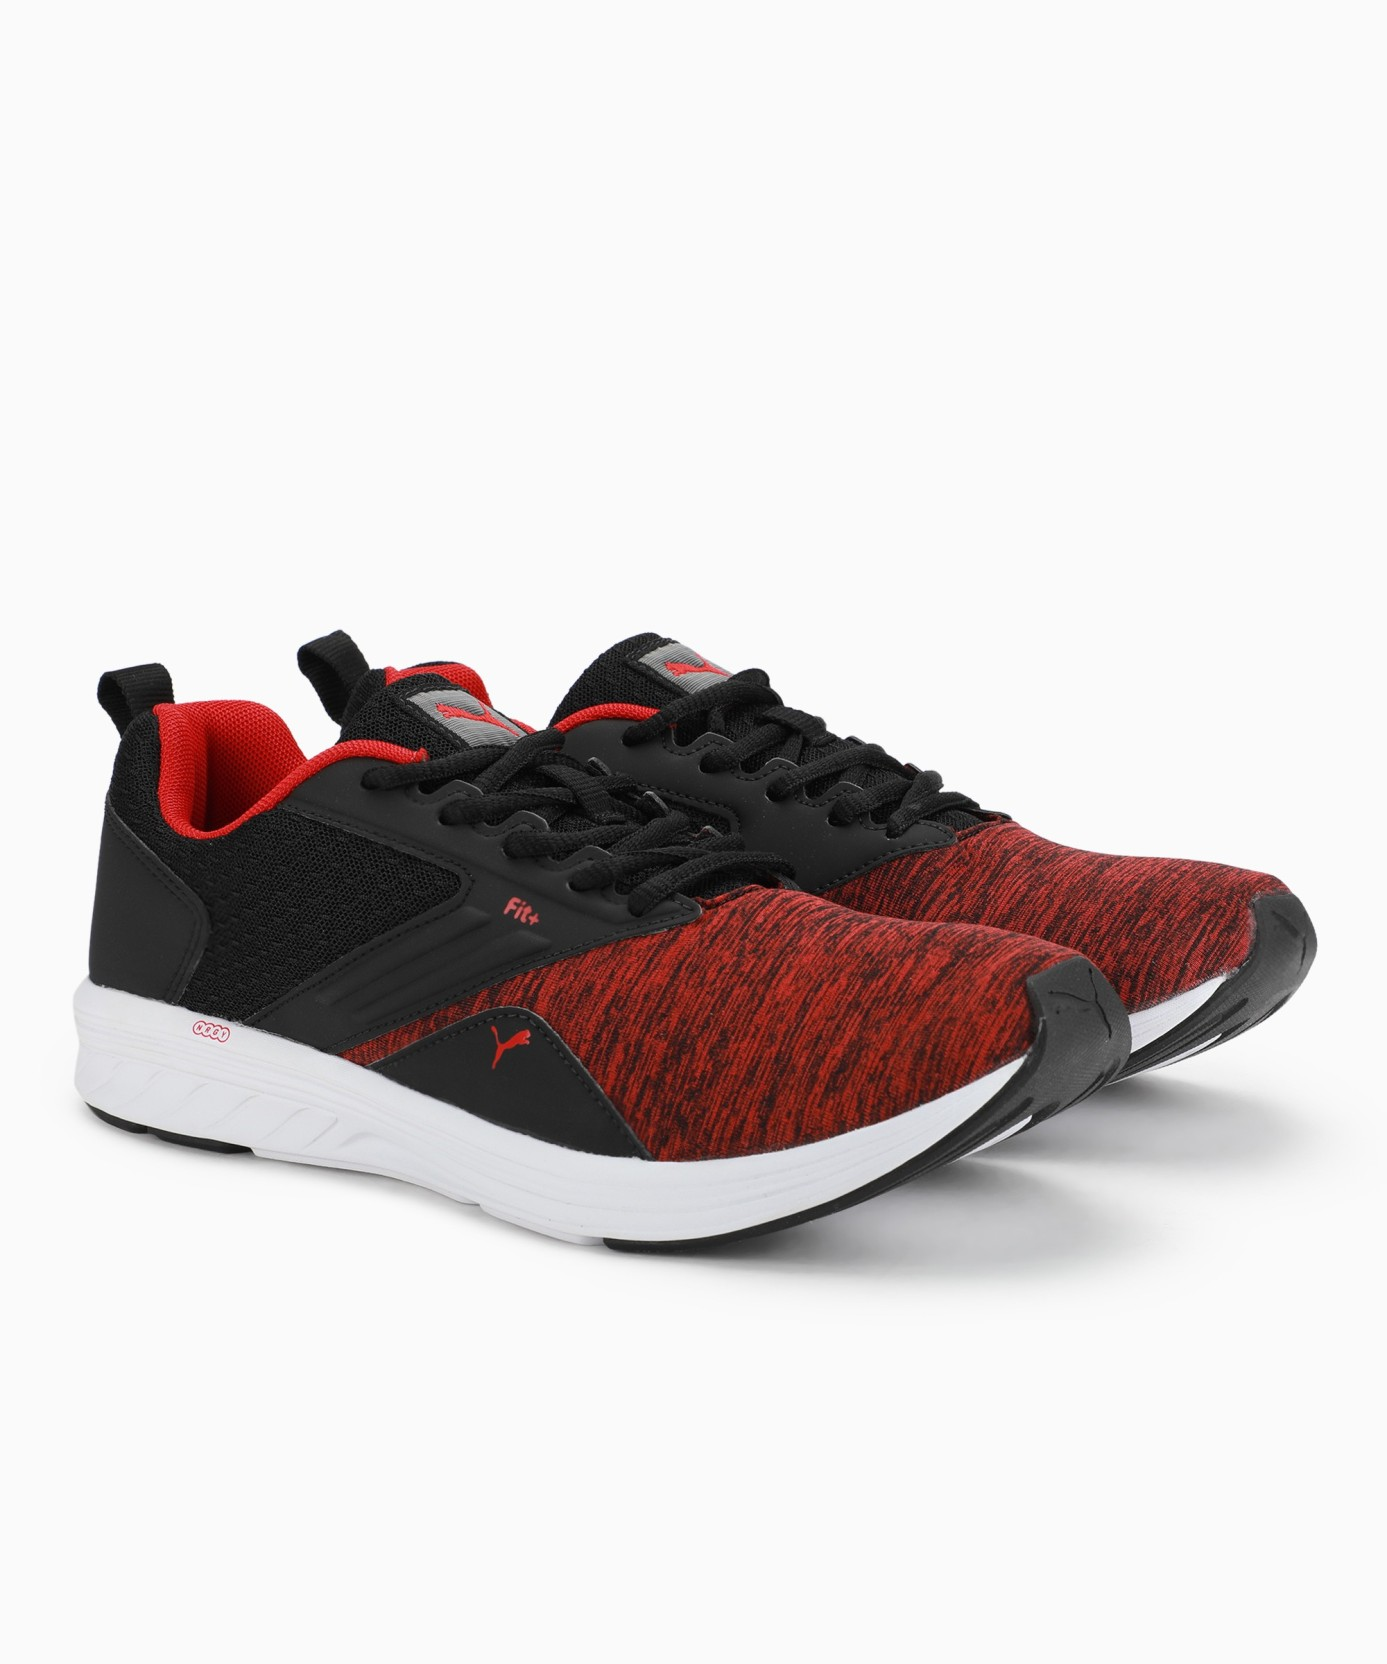 finest selection c139c d651a Puma Comet IPD Running Shoes For Men (Red, Black)